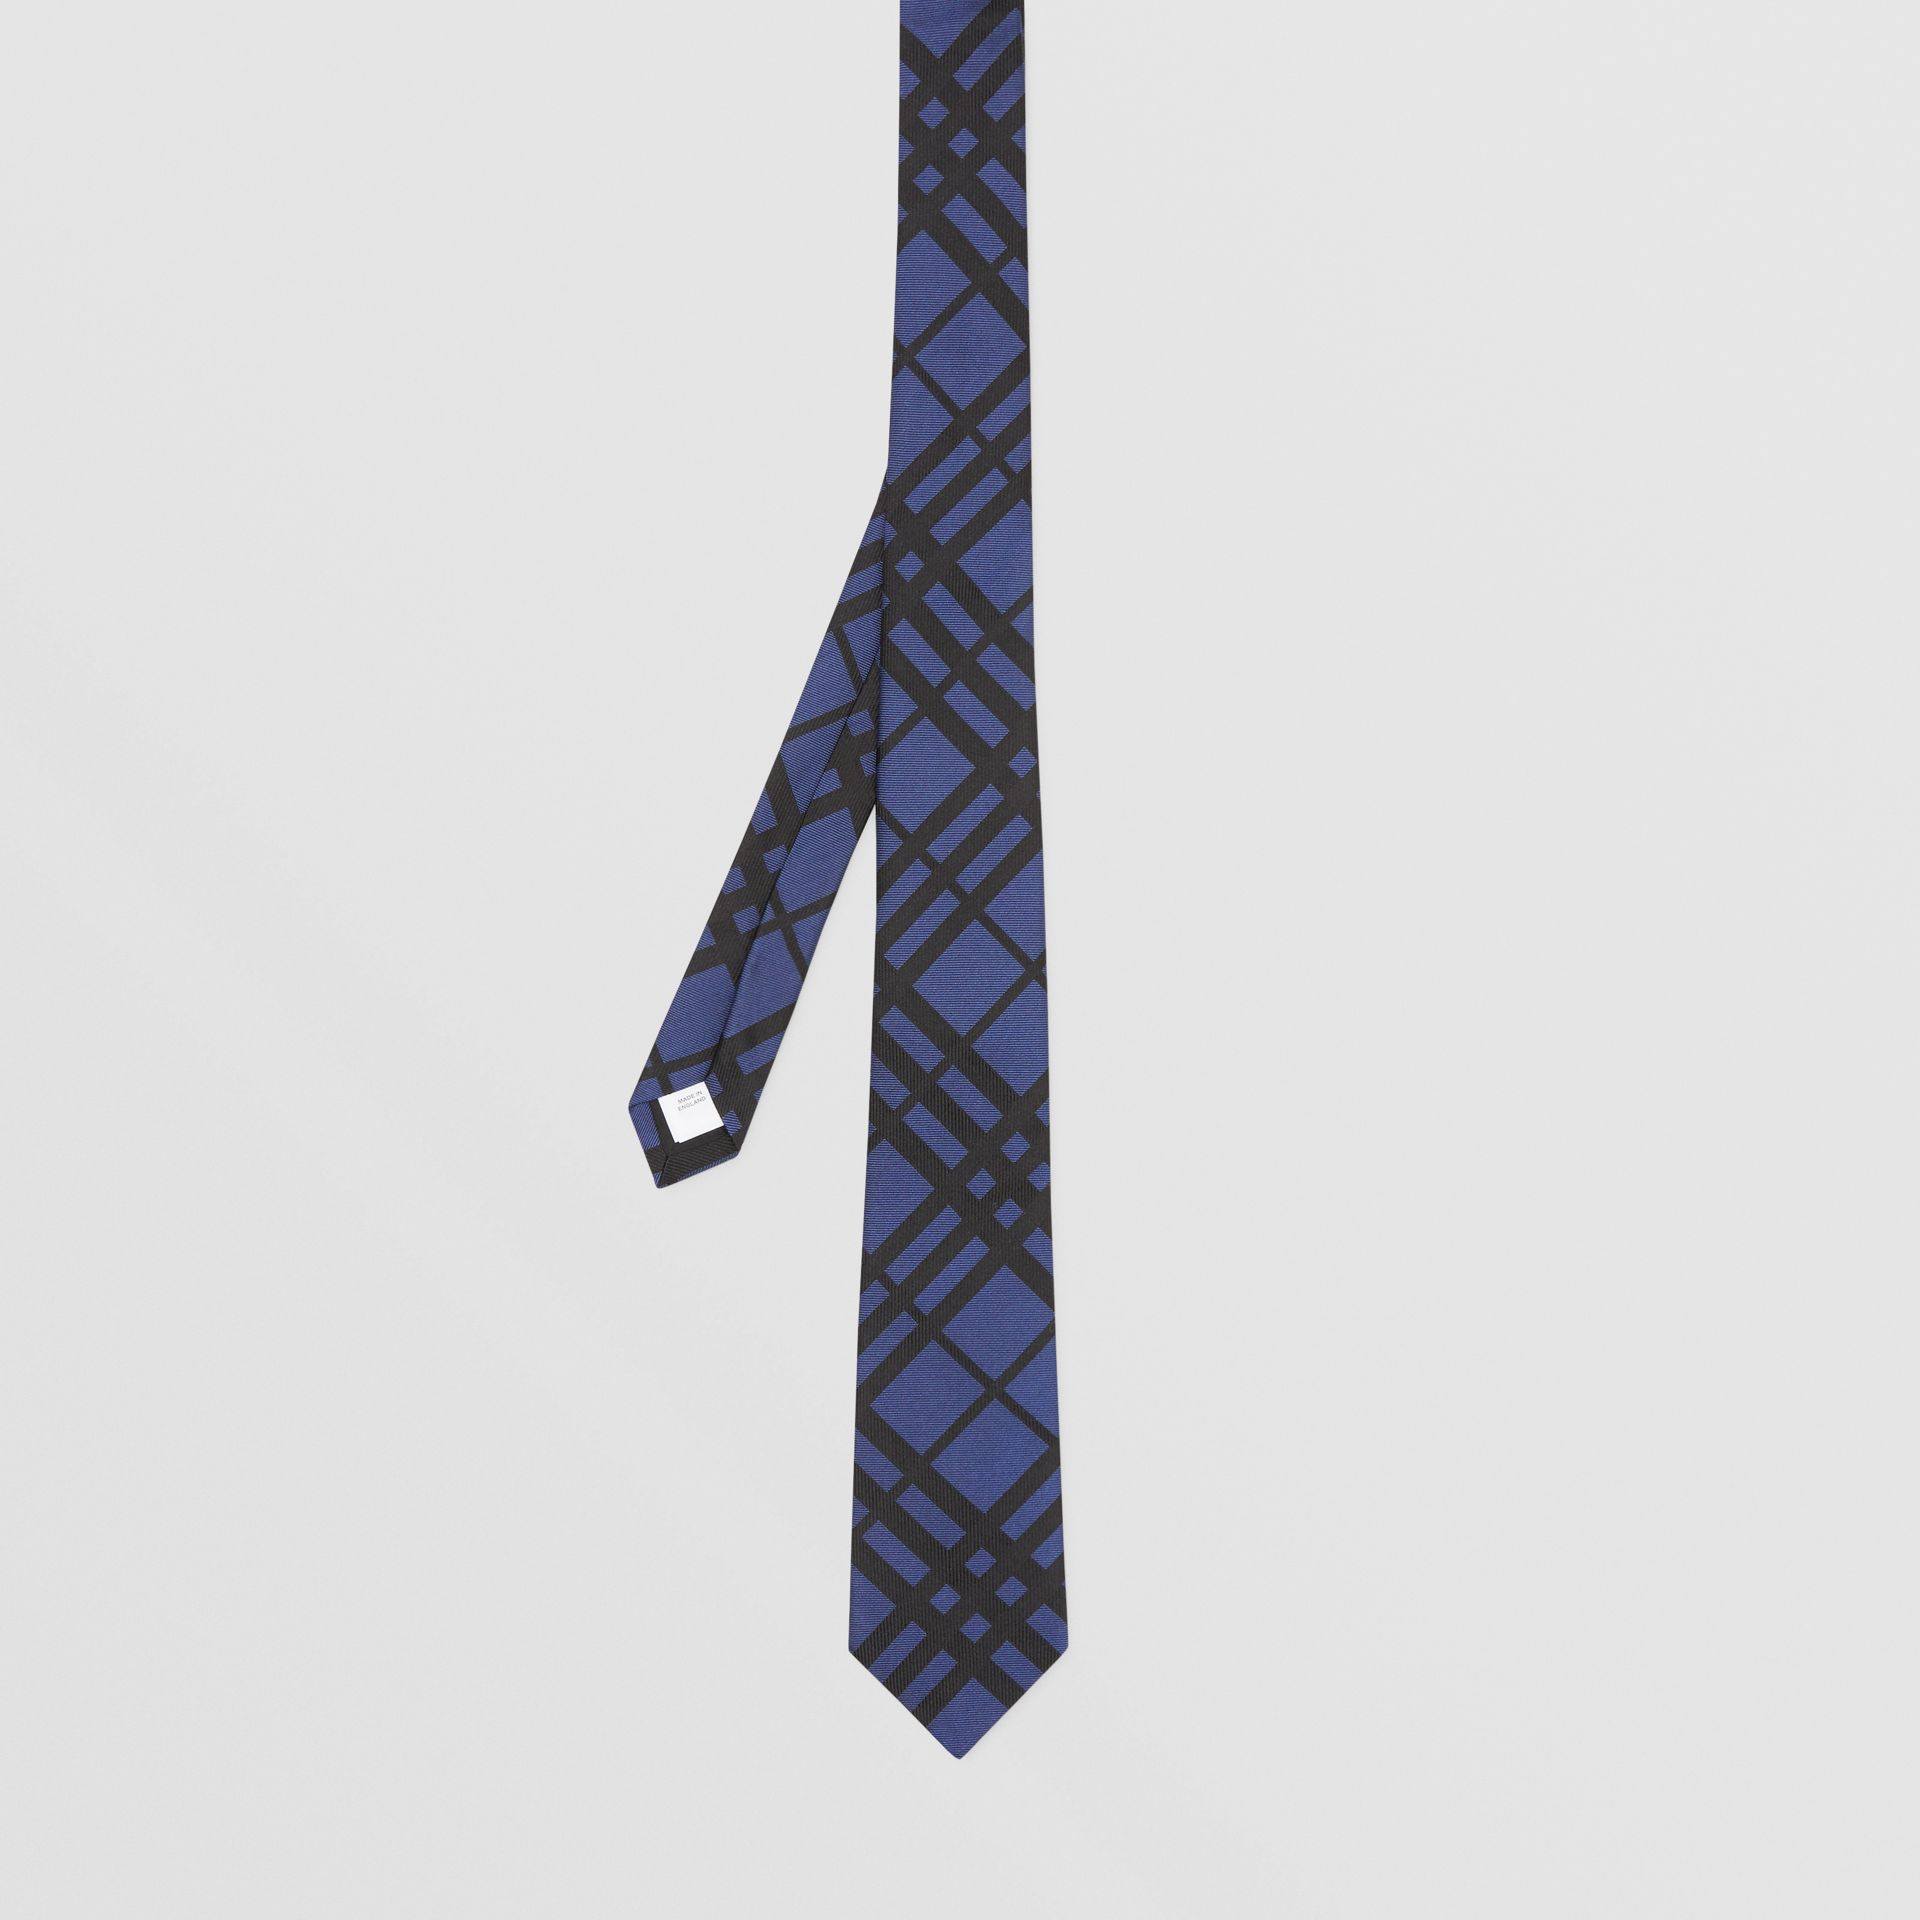 Classic Cut Check Silk Jacquard Tie in Canvas Blue - Men | Burberry Hong Kong S.A.R - gallery image 4